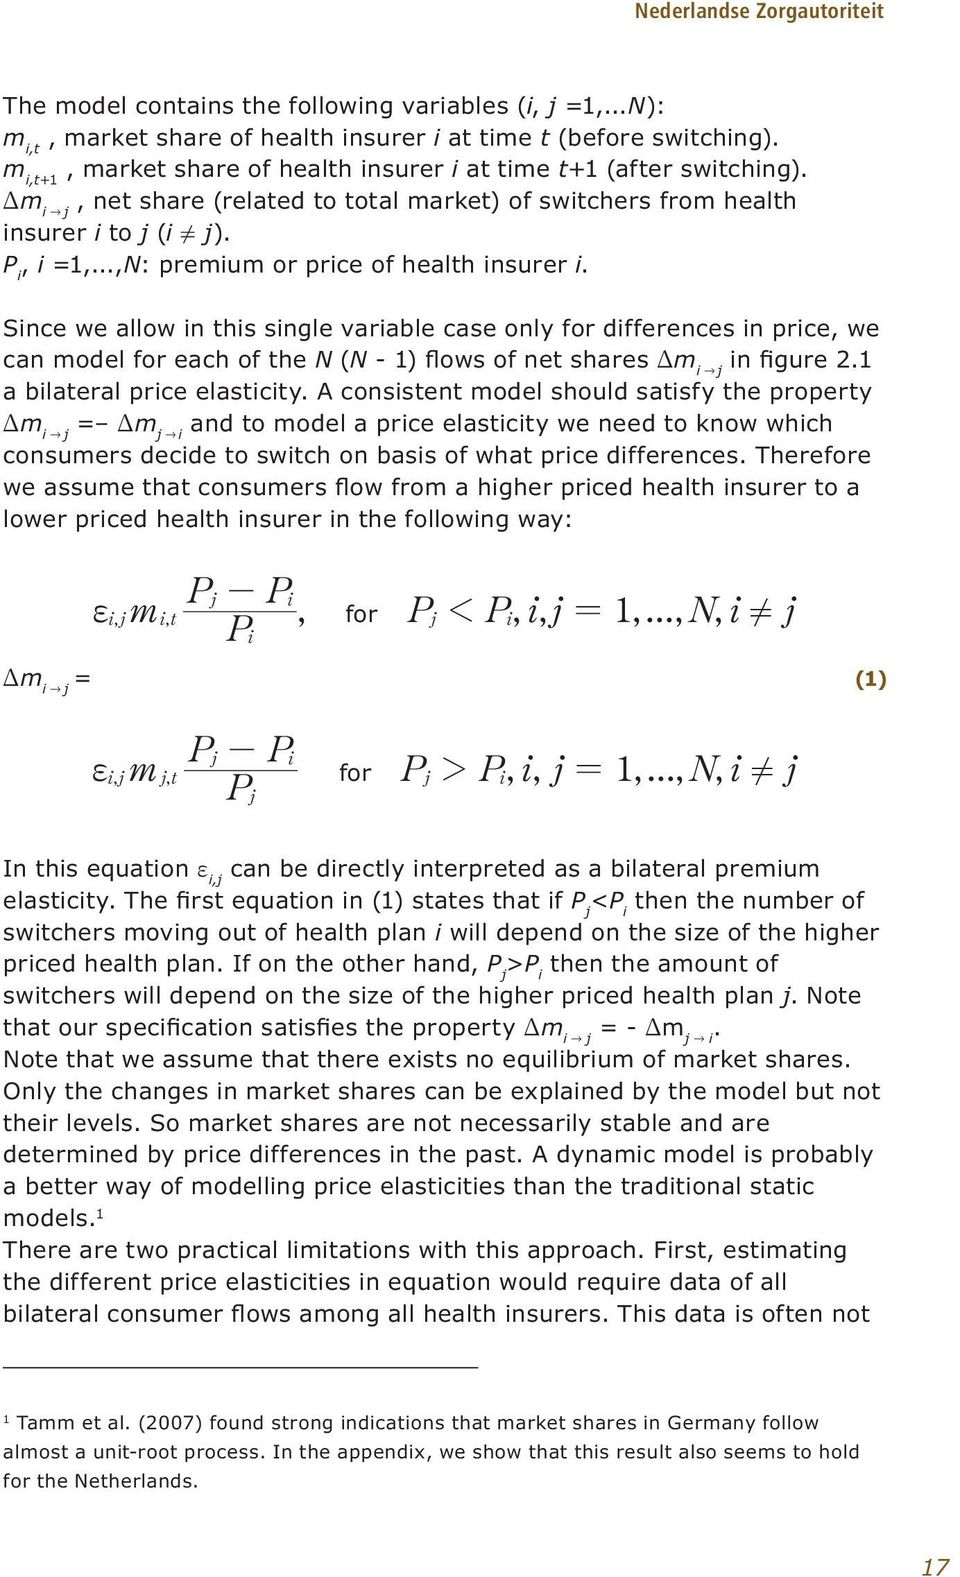 ..,N: premium or price of health insurer i. Since we allow in this single variable case only for differences in price, we can model for each of the N (N - 1) flows of net shares Dm i j in figure 2.